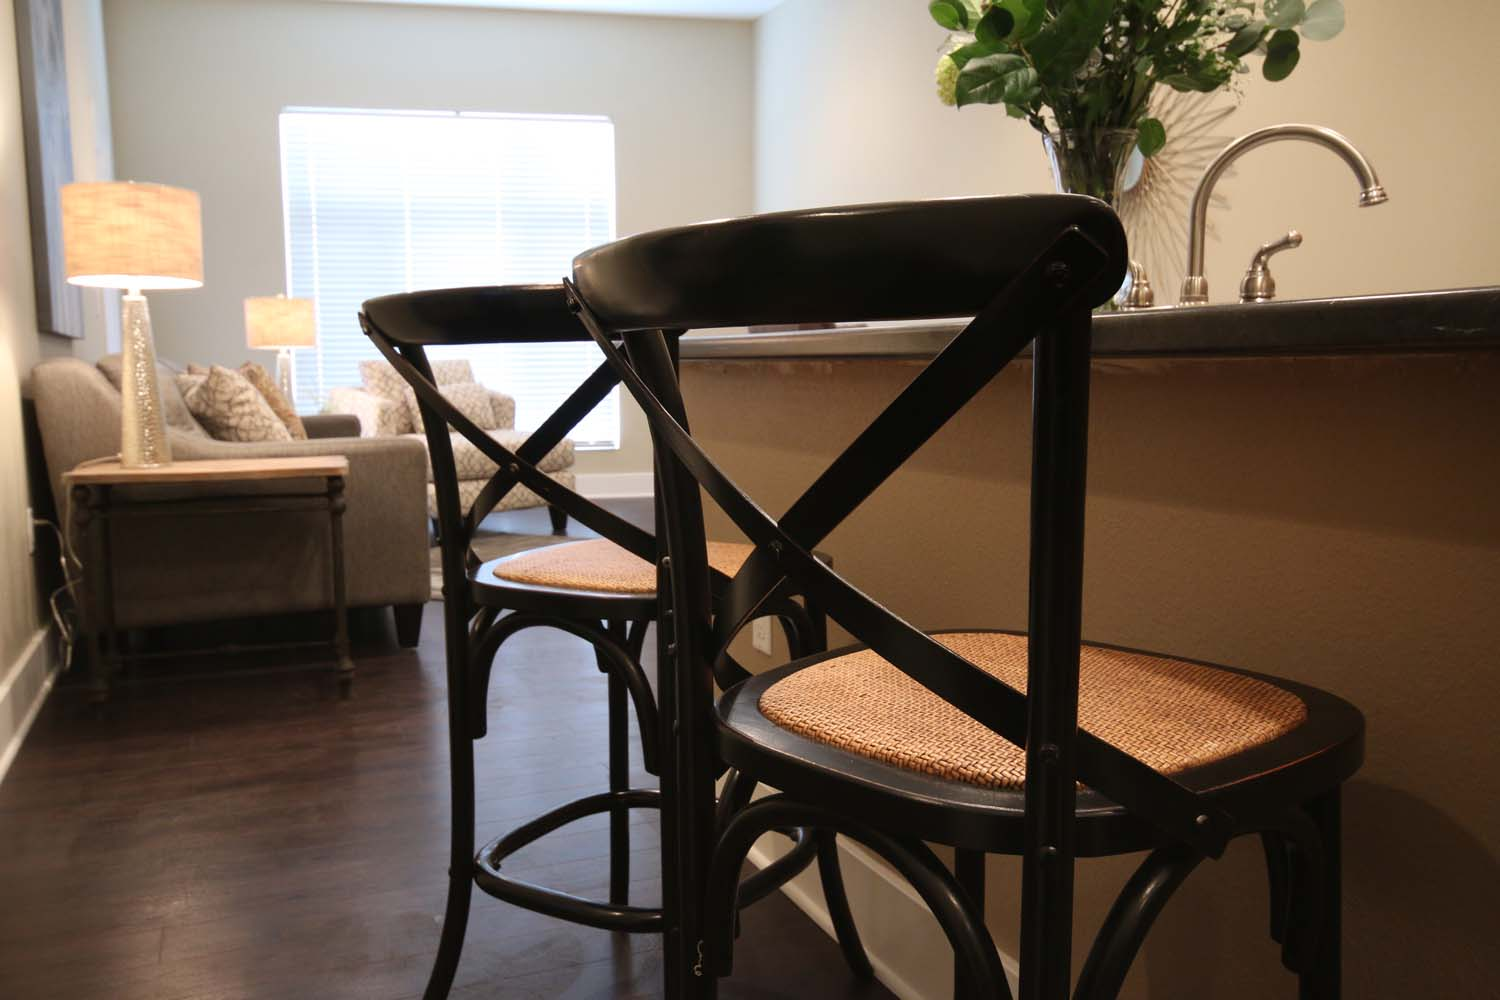 Contact Us To Order Rental Furniture Furniture Options